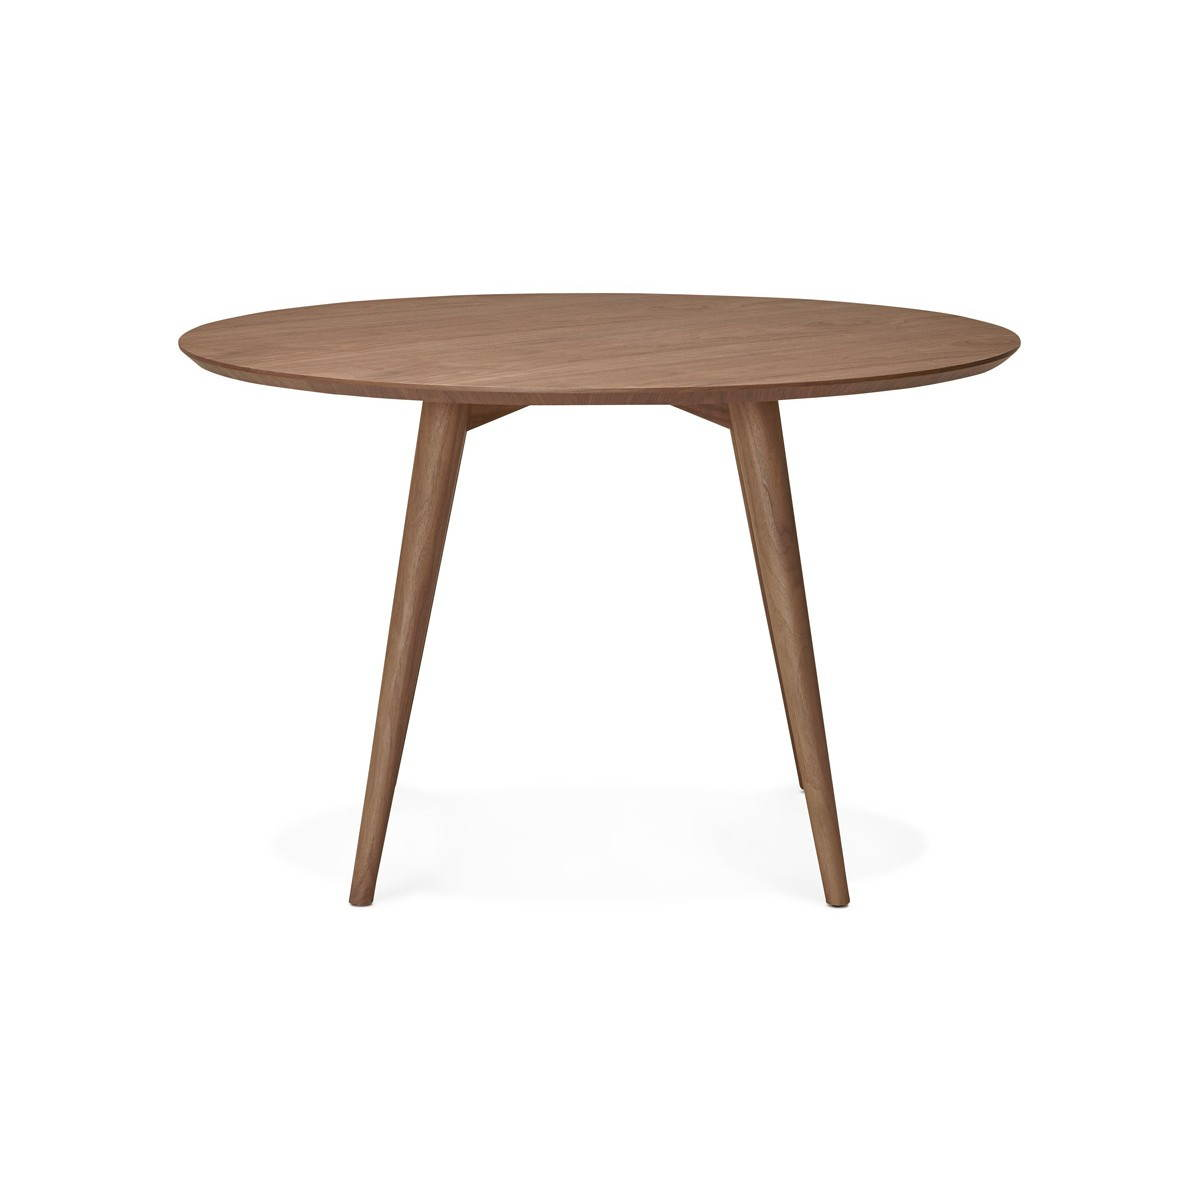 scandinavian style wooden dining table